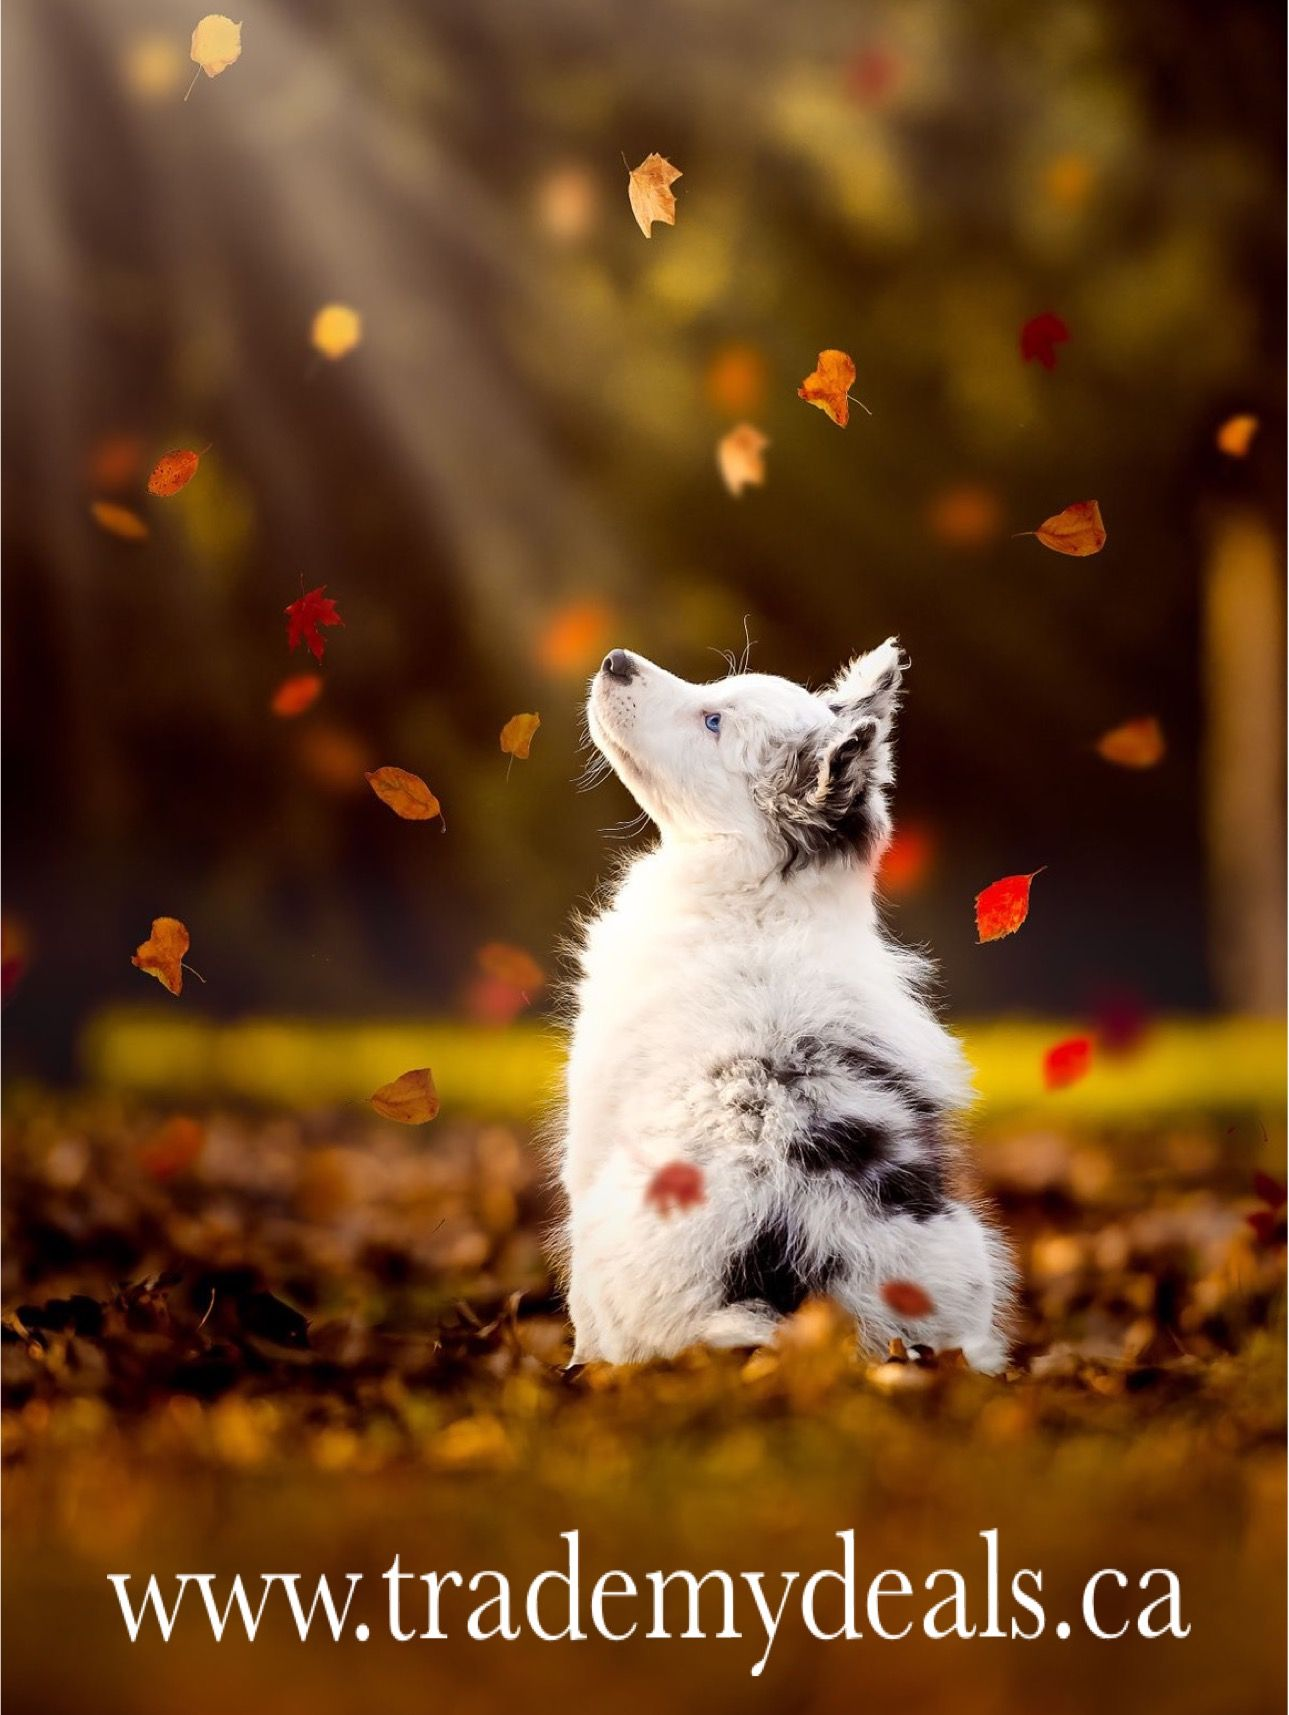 Holiday lane is open on trademydeals.ca Cute animals